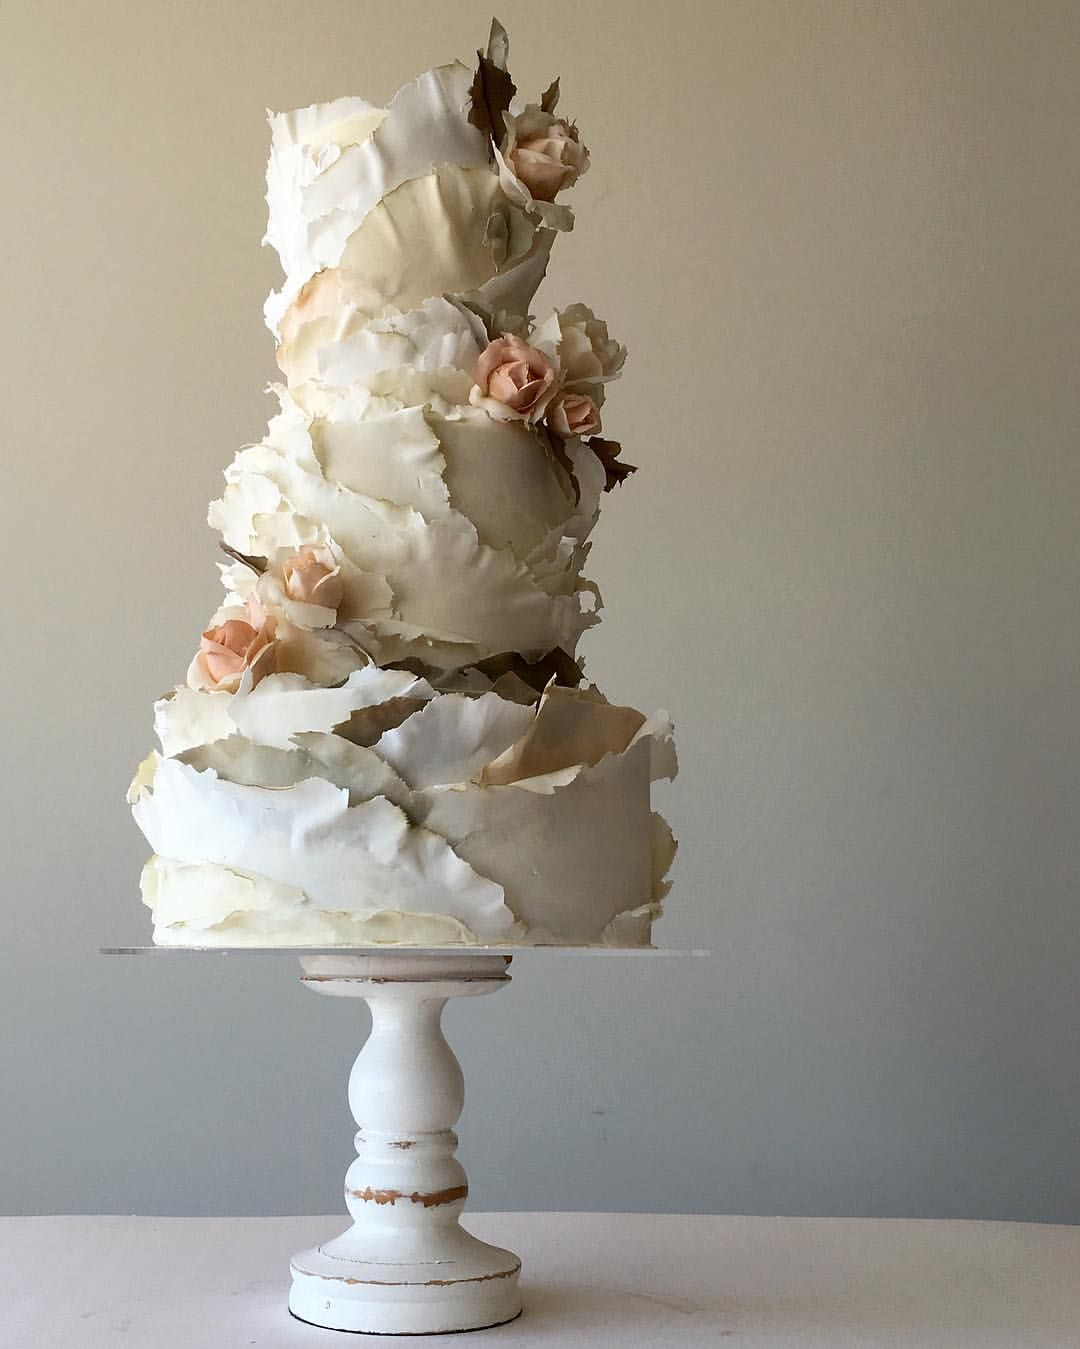 Wedding Cake 101 An Introduction To Wedding Cakes: 1,813 Likes, 101 Comments